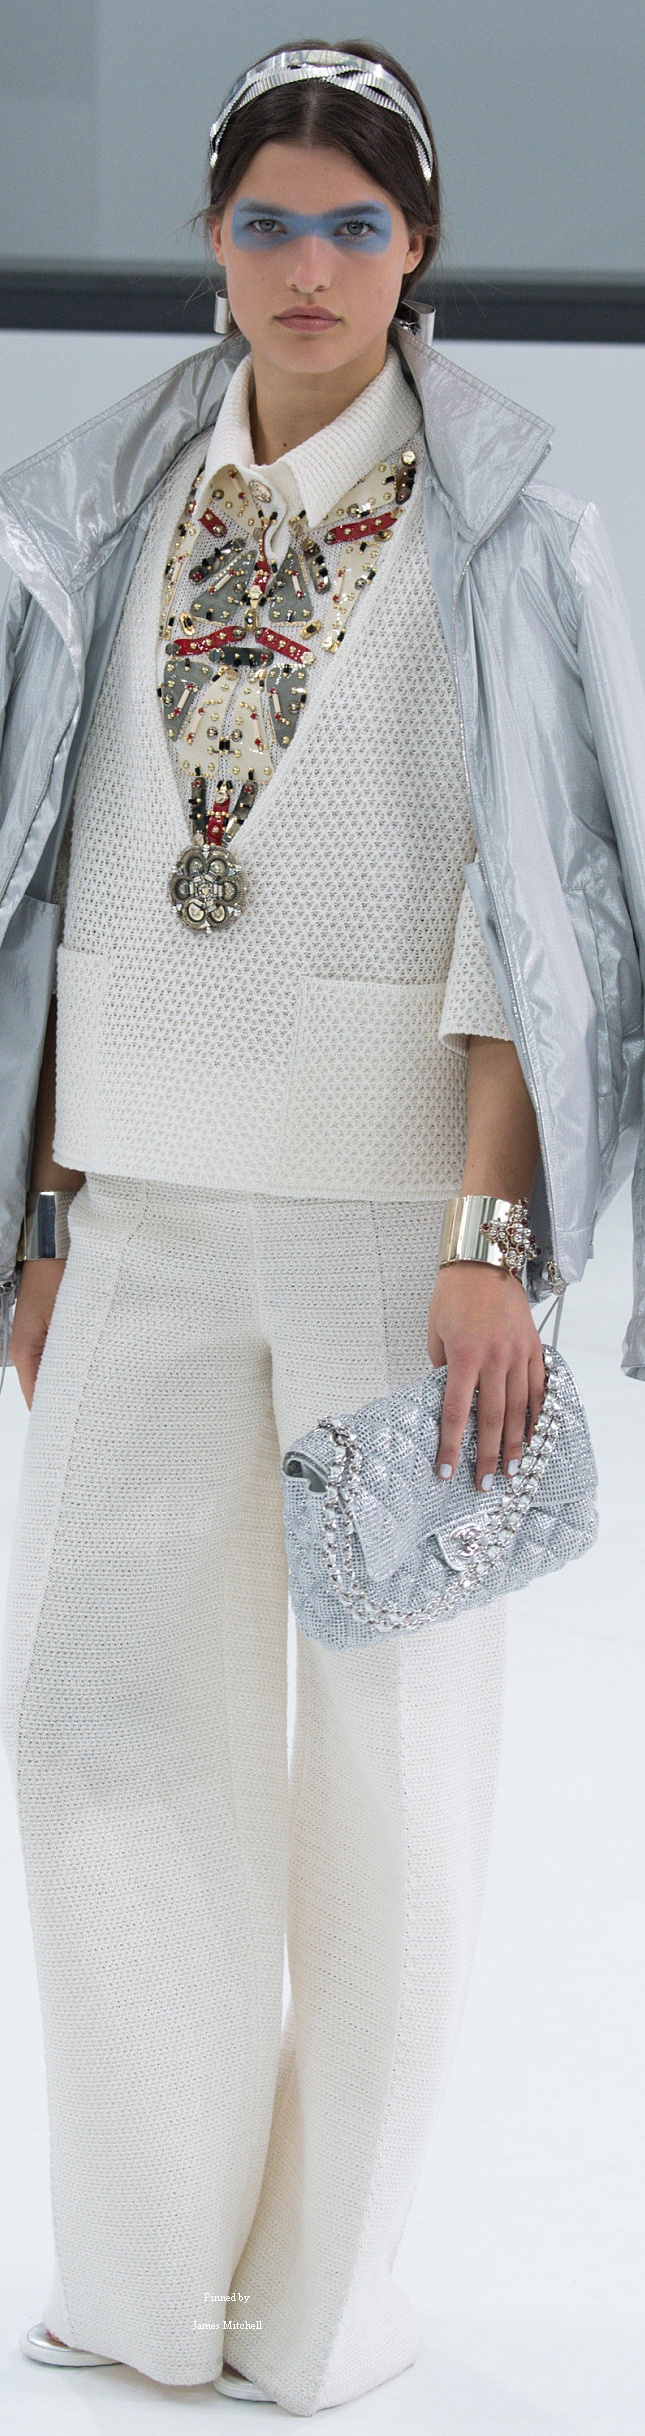 Chanel Collection Spring 2016 Ready-to-Wear